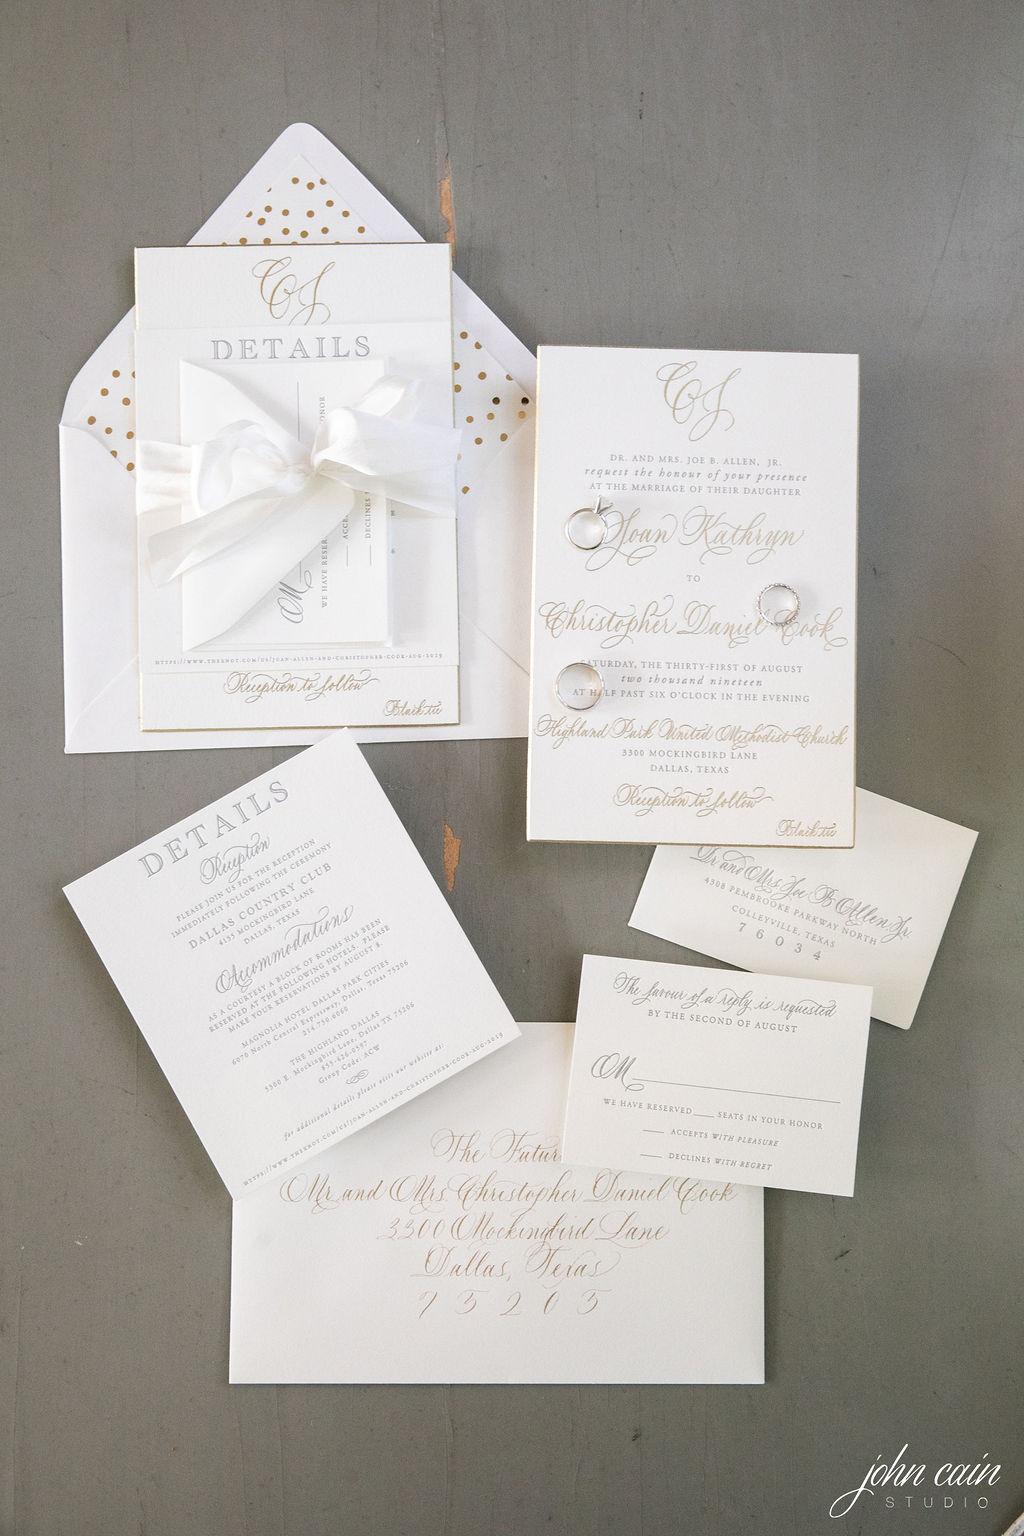 Dallas Country Club Wedding - Timeless Dallas Wedding - Wedding Planner in Dallas - Allday Events - Details - 34.JPG